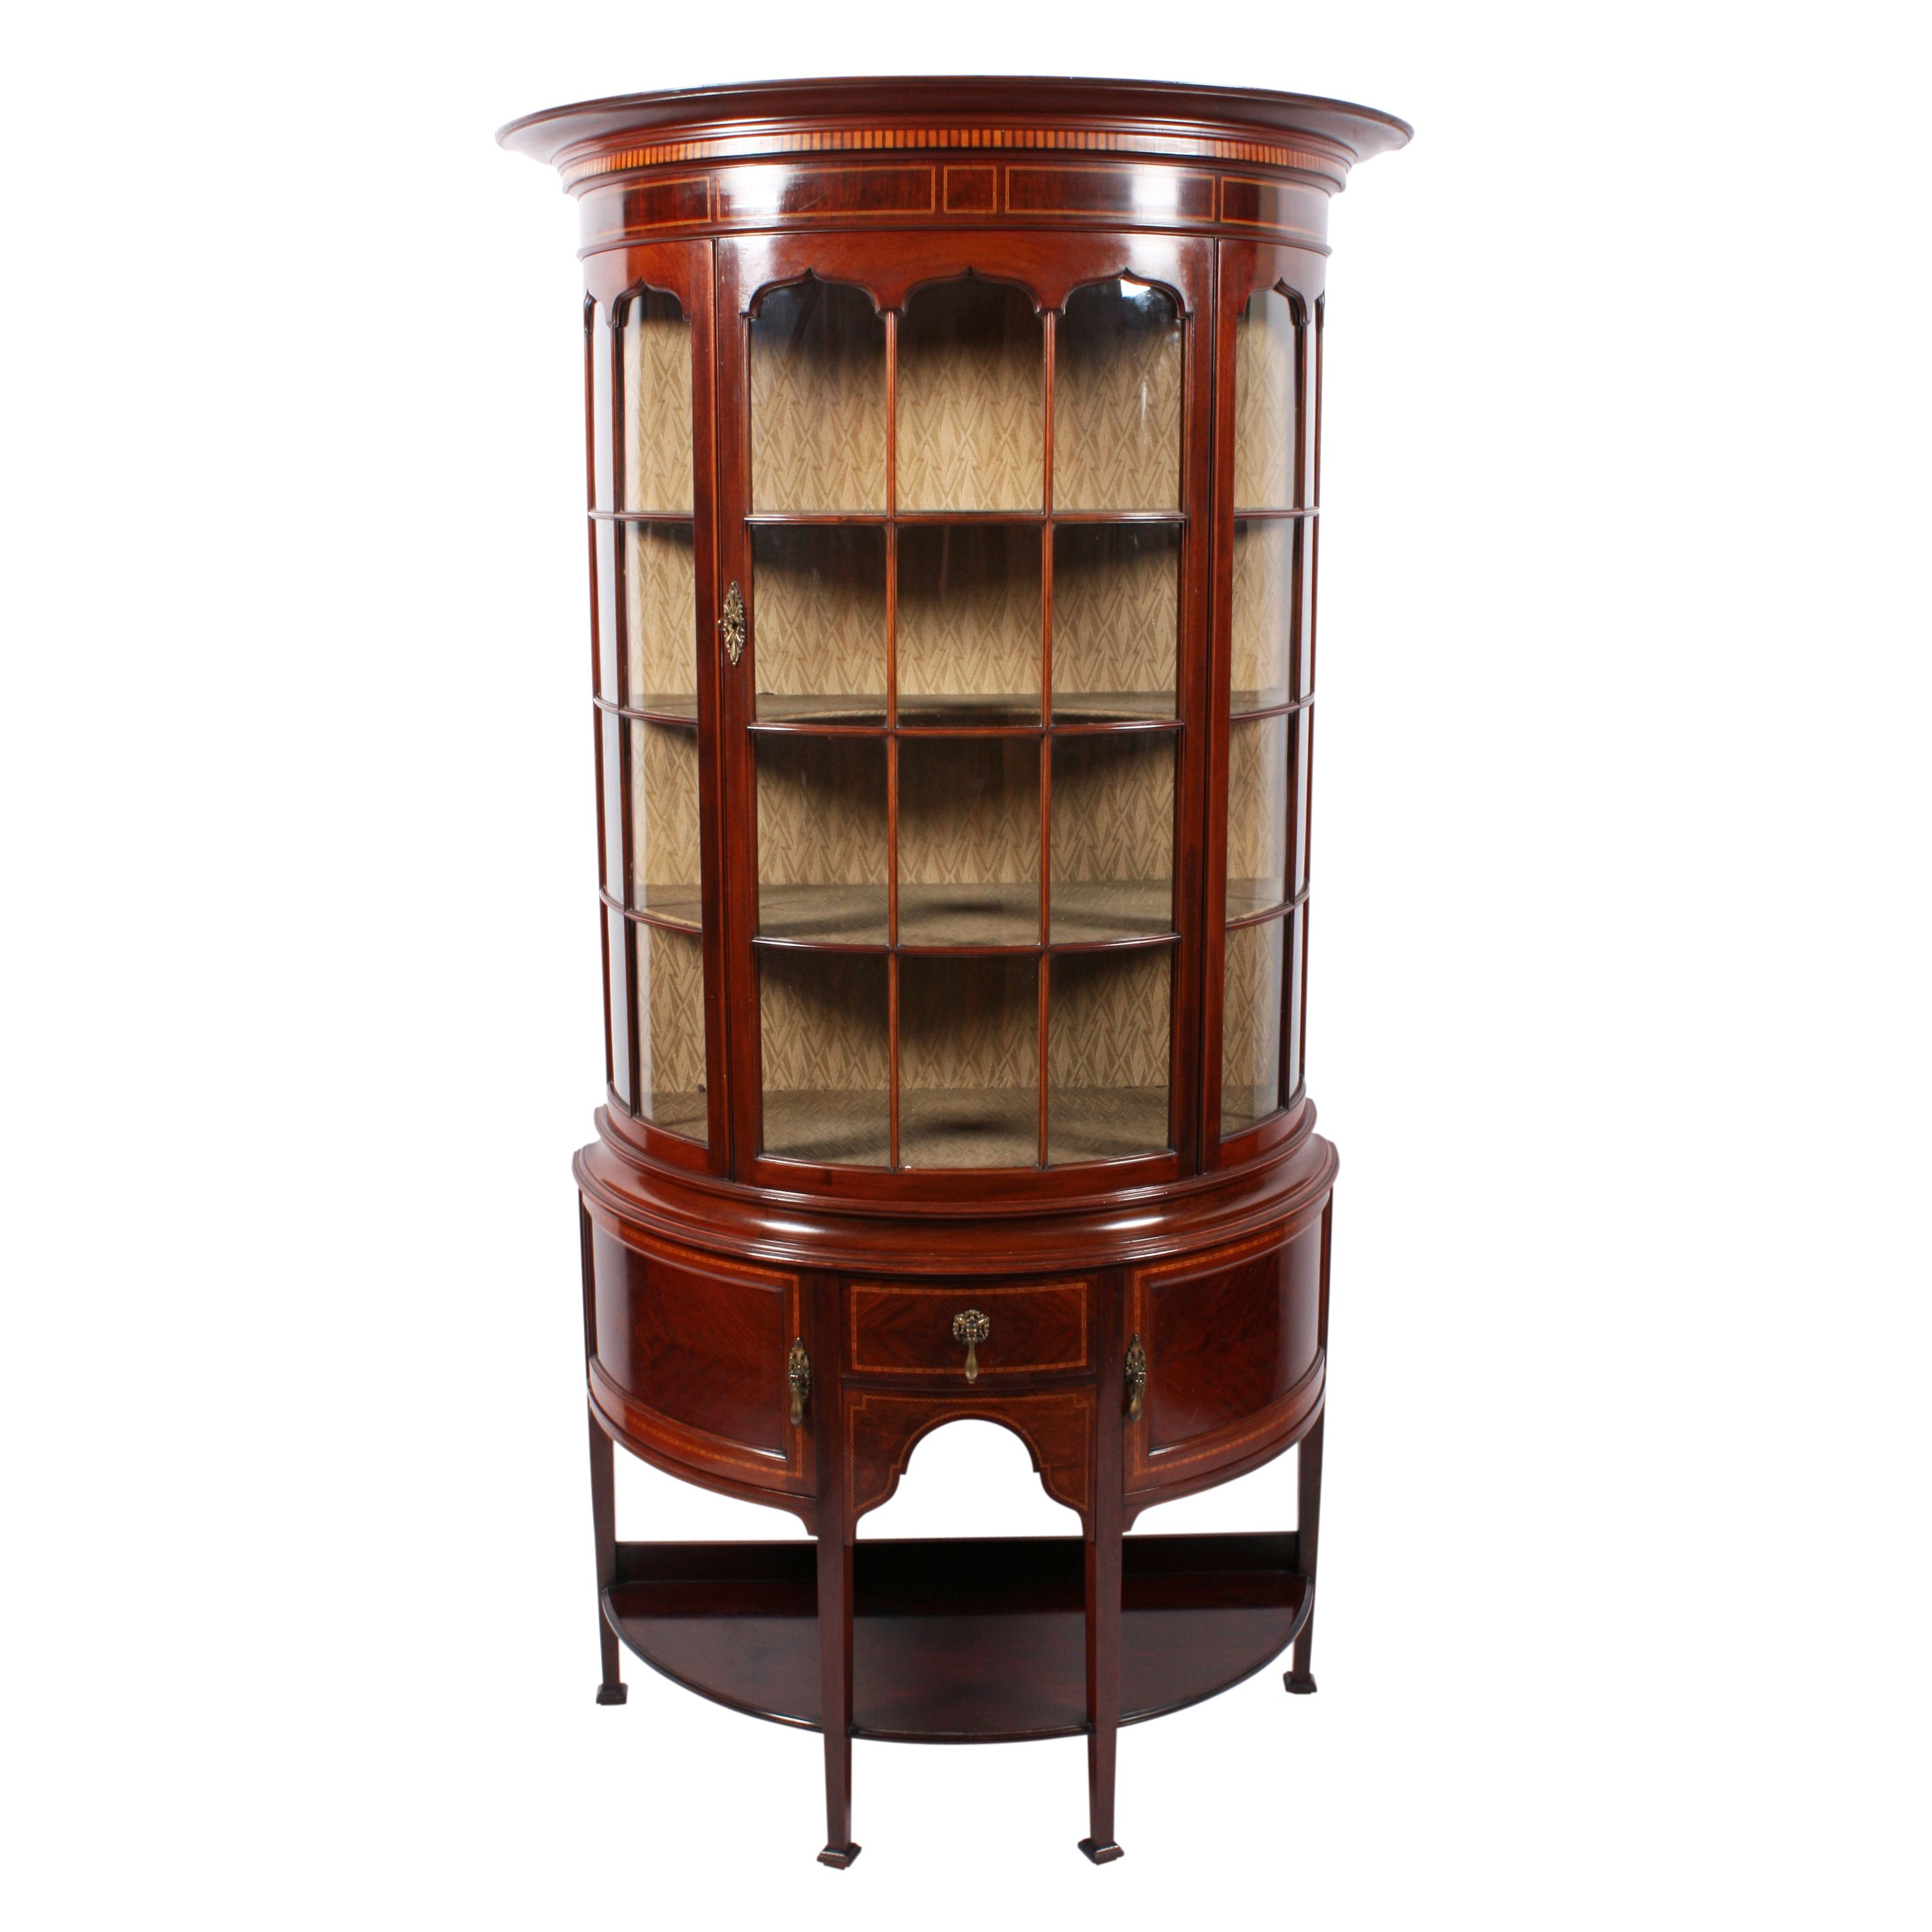 Edwardian Mahogany Display Cabinet Antique Dining RoomsDining